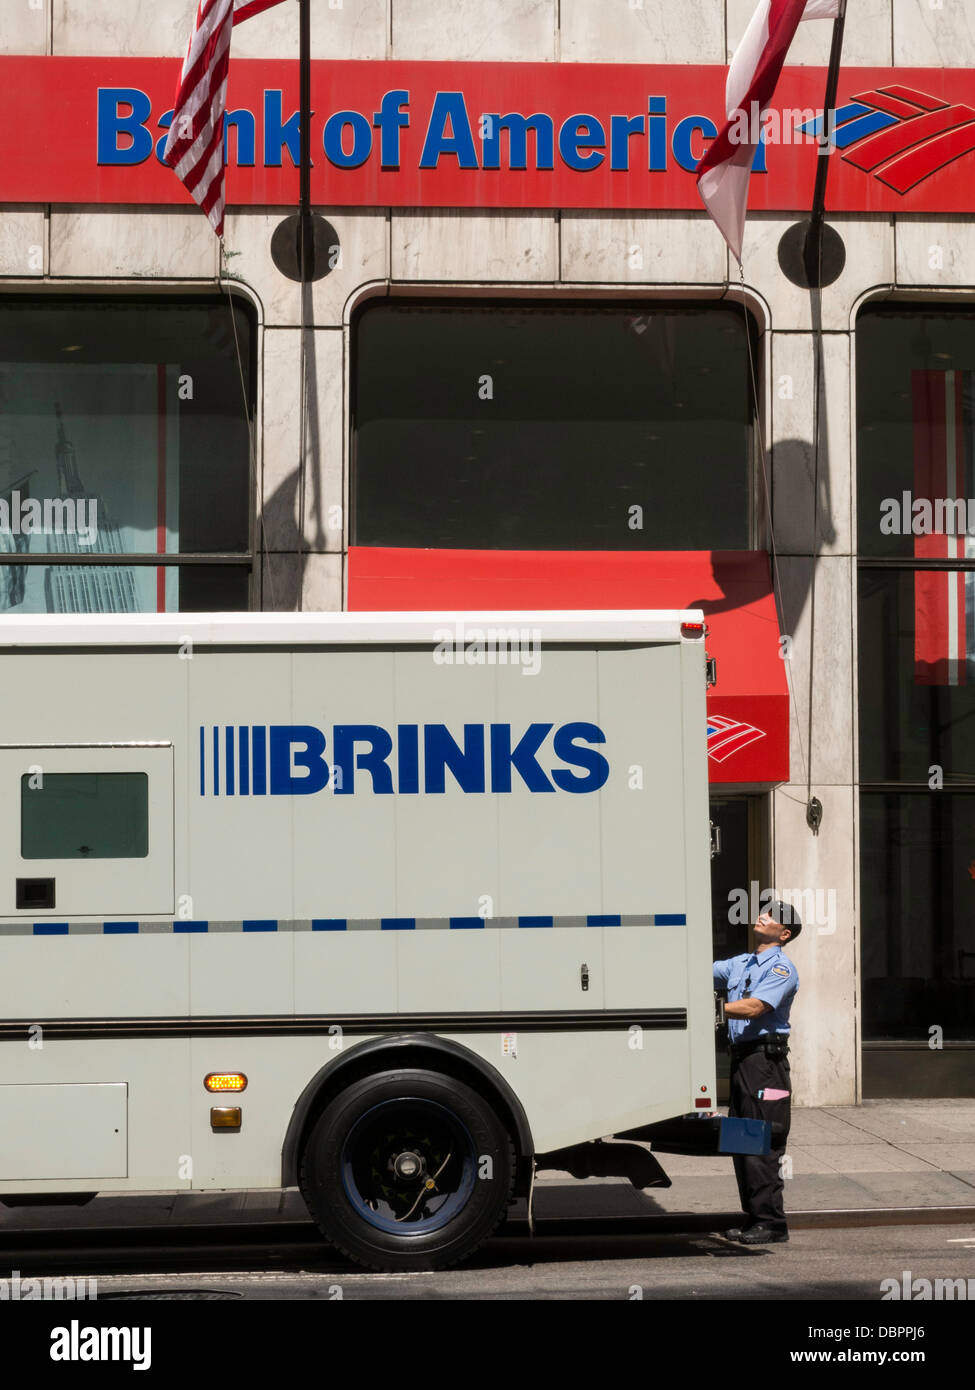 Security Bank 5th Avenue